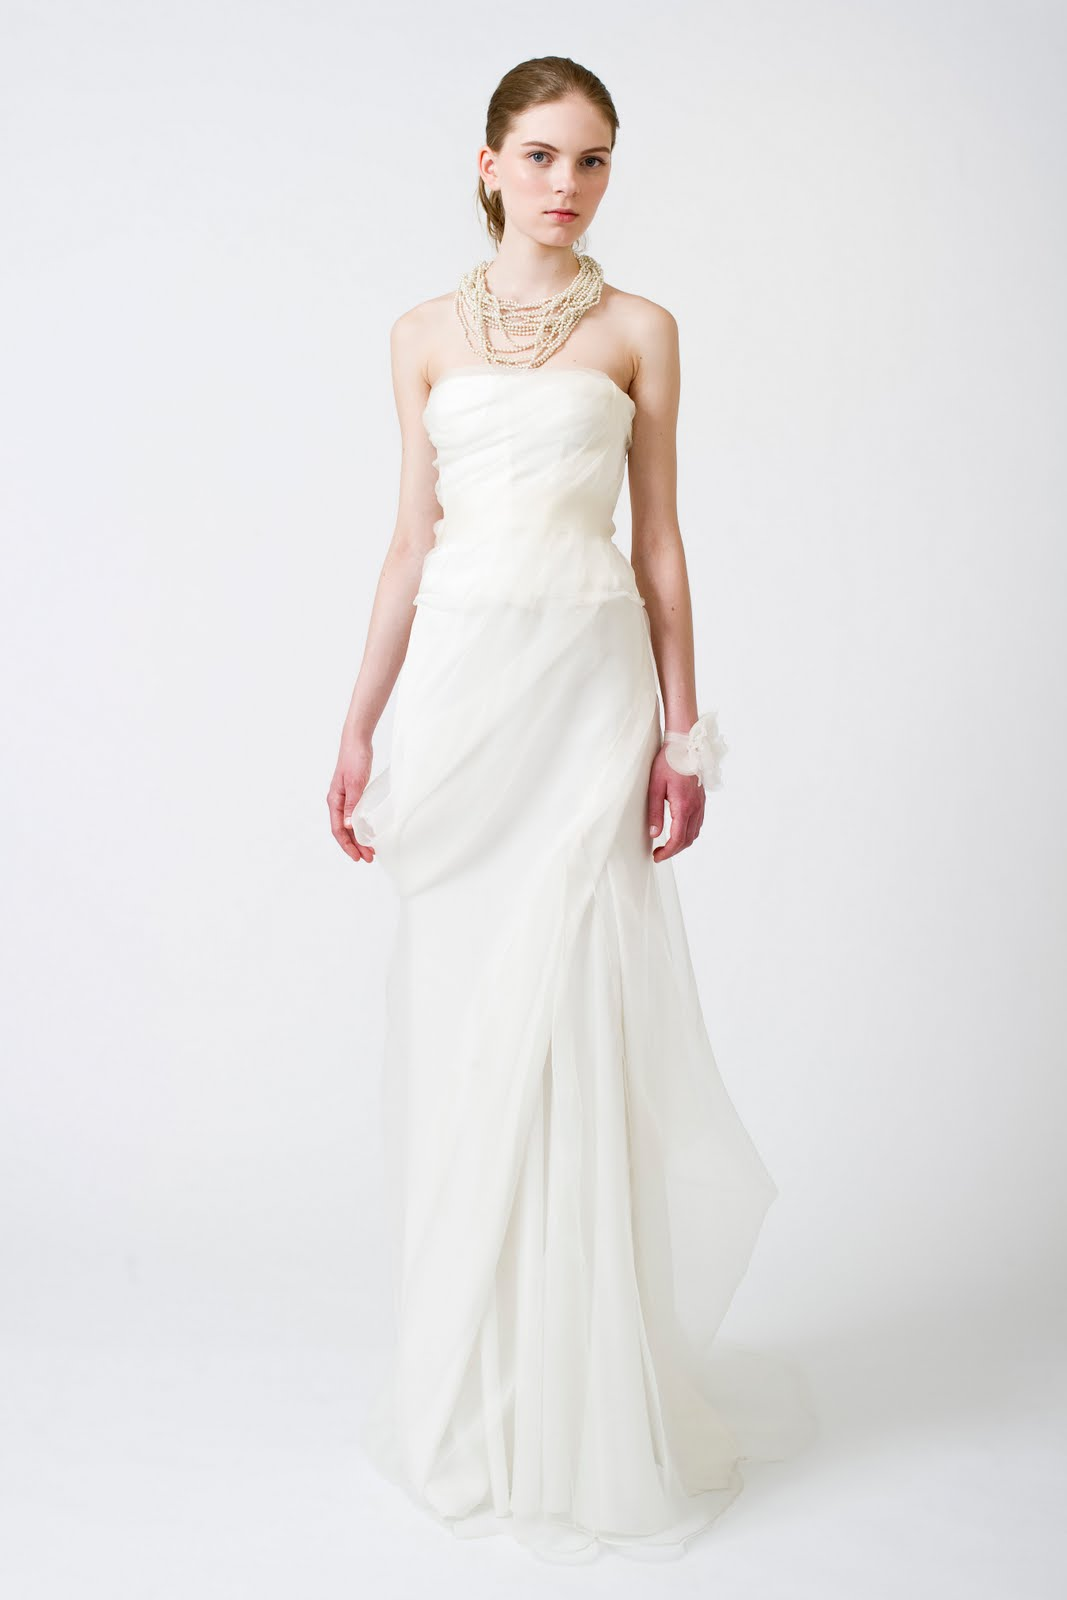 Les petites belles choses vera wang spring 2011 bridal for Vera wang used wedding dress